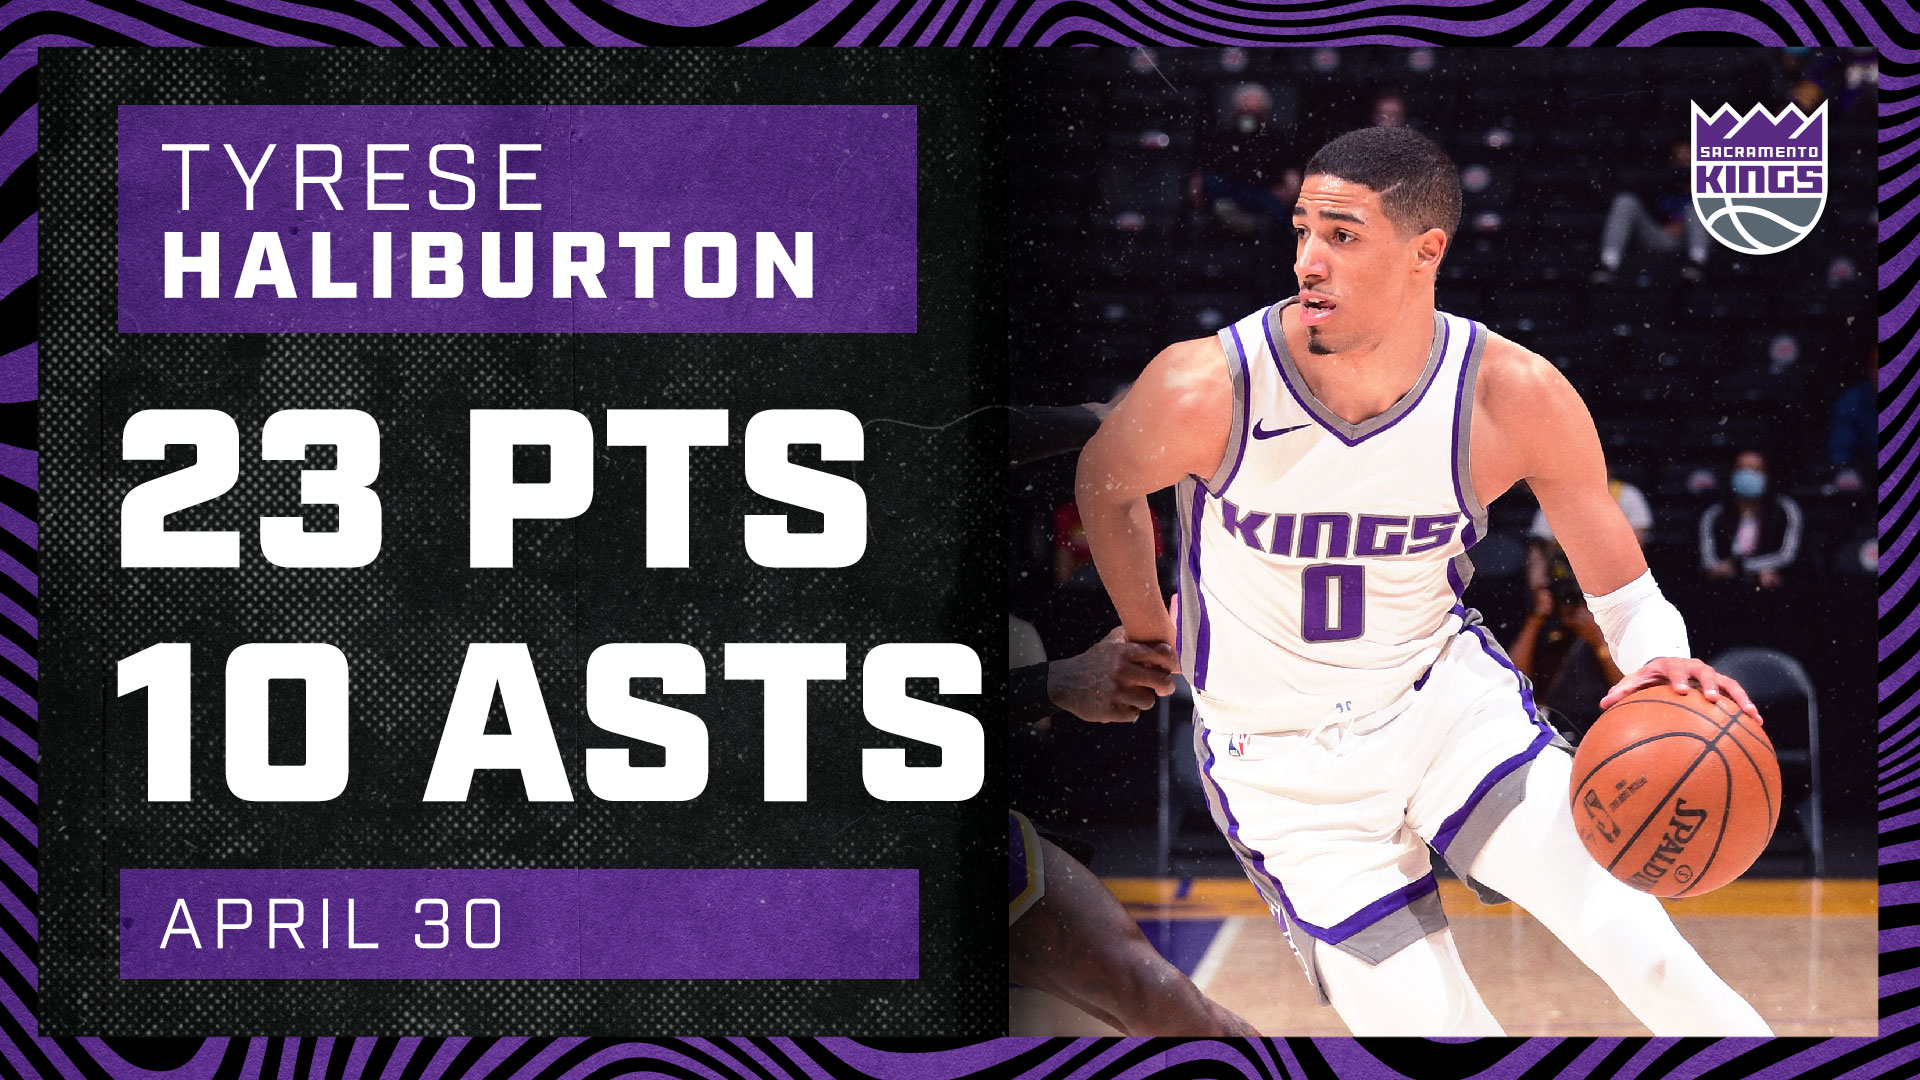 Haliburton Finishes with Double-Double Against Lakers | Kings vs Lakers 4.30.21